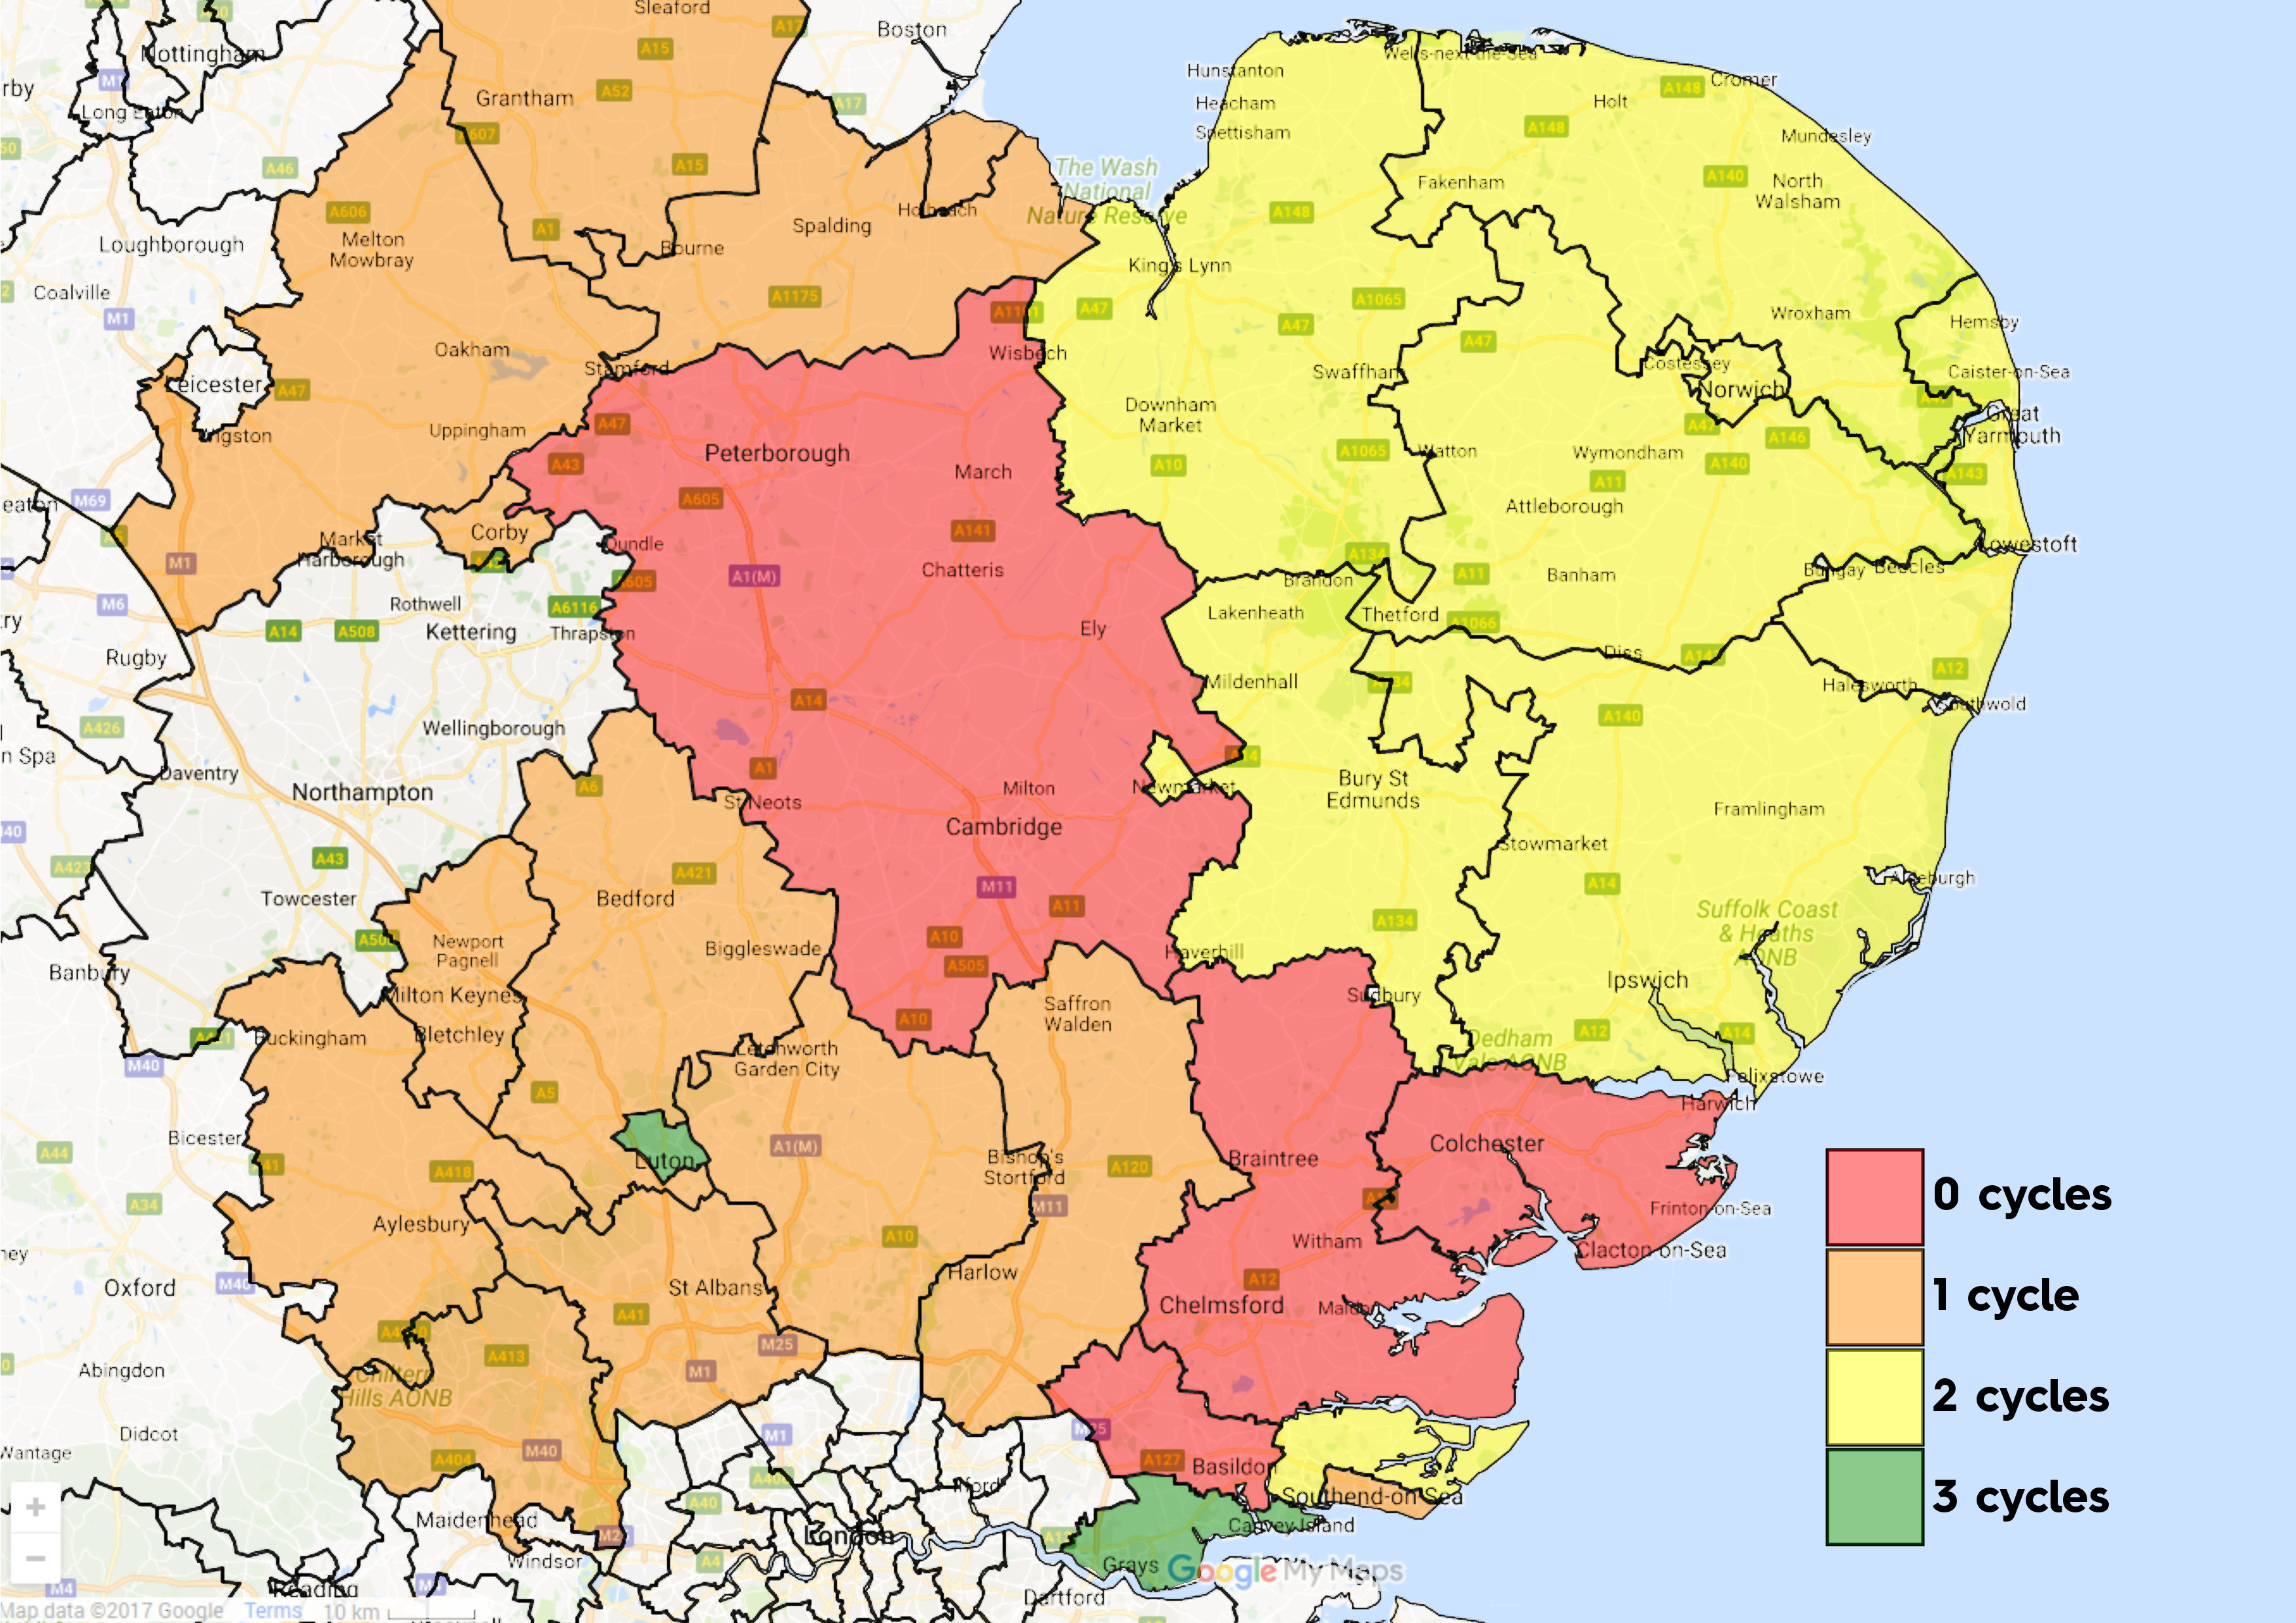 East Anglia CCG map Apr19 IVF Cycles